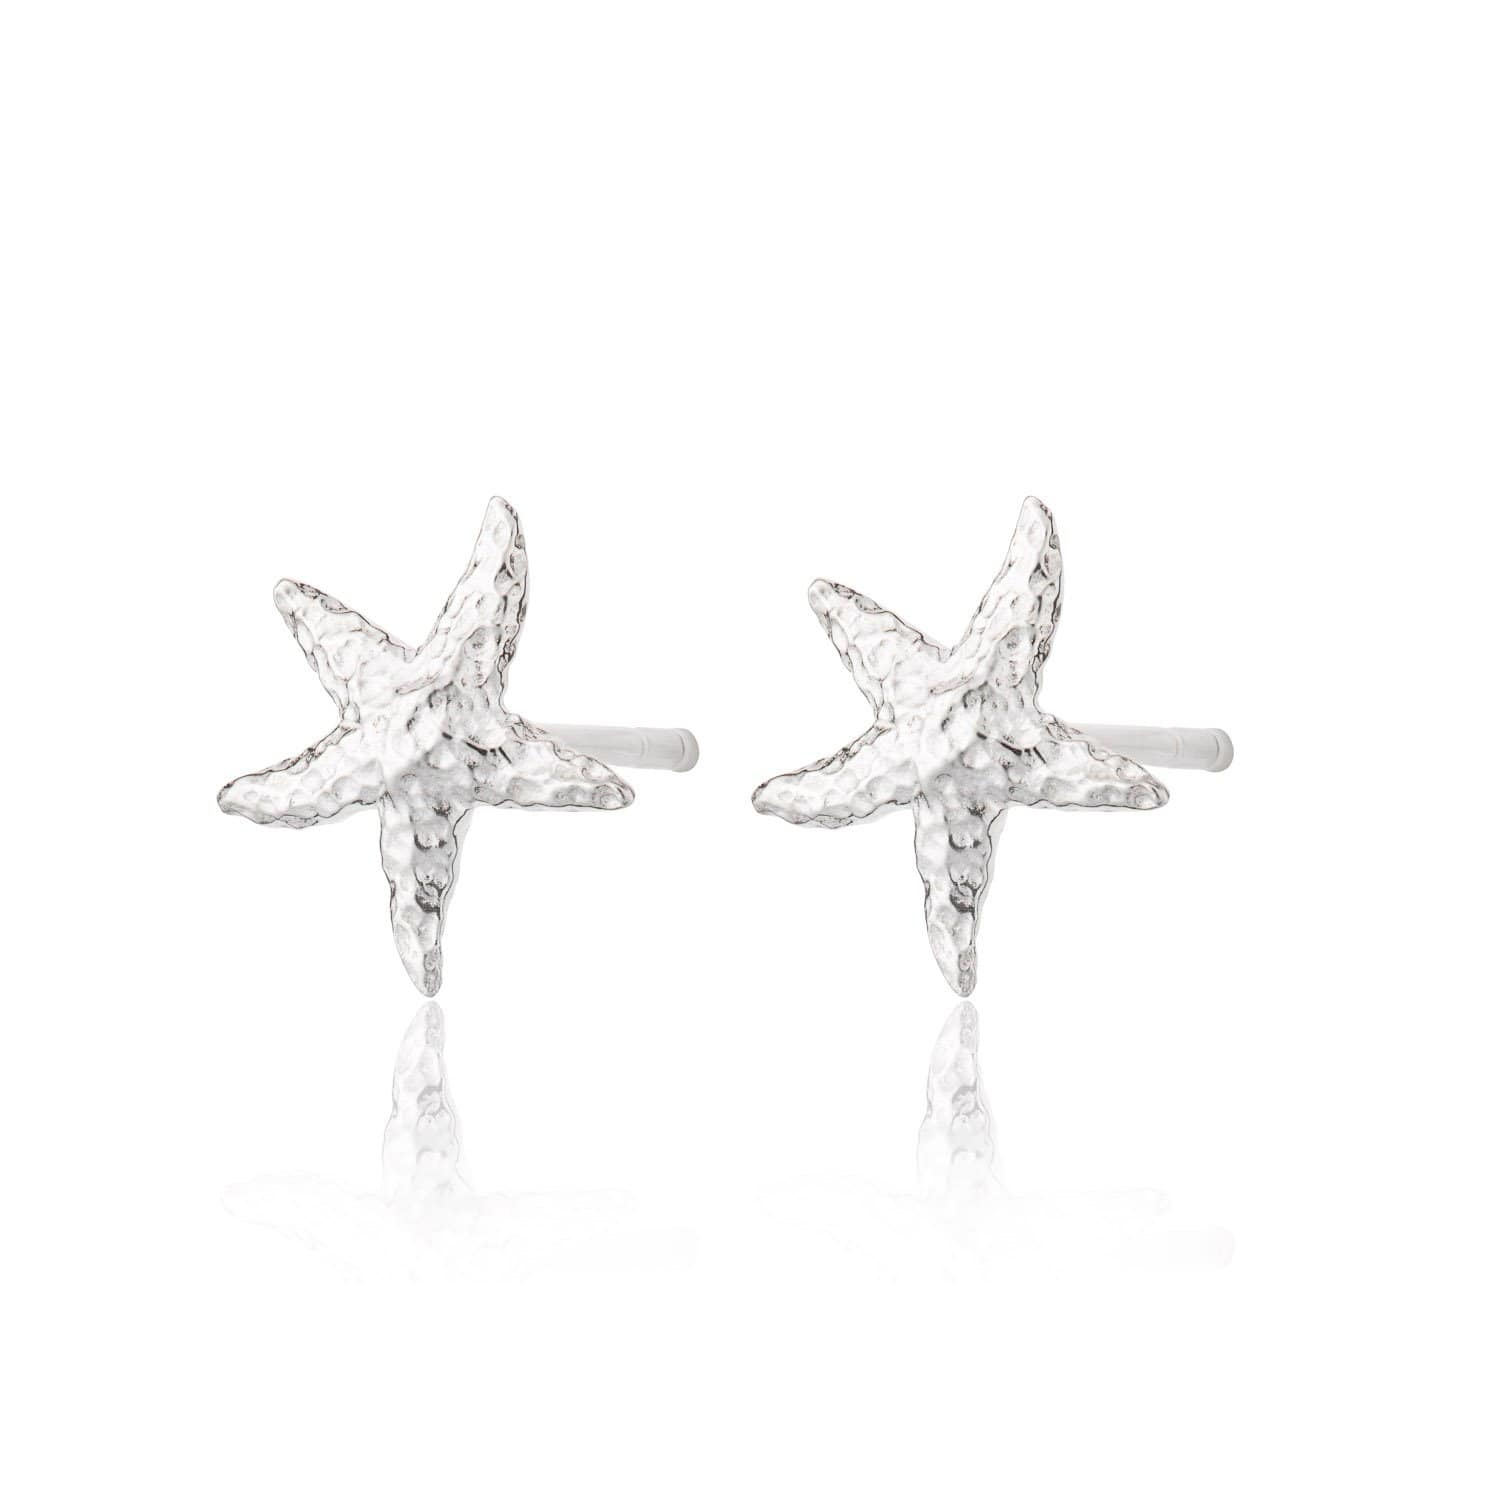 Silver Starfish Stud Earrings - Lily Charmed